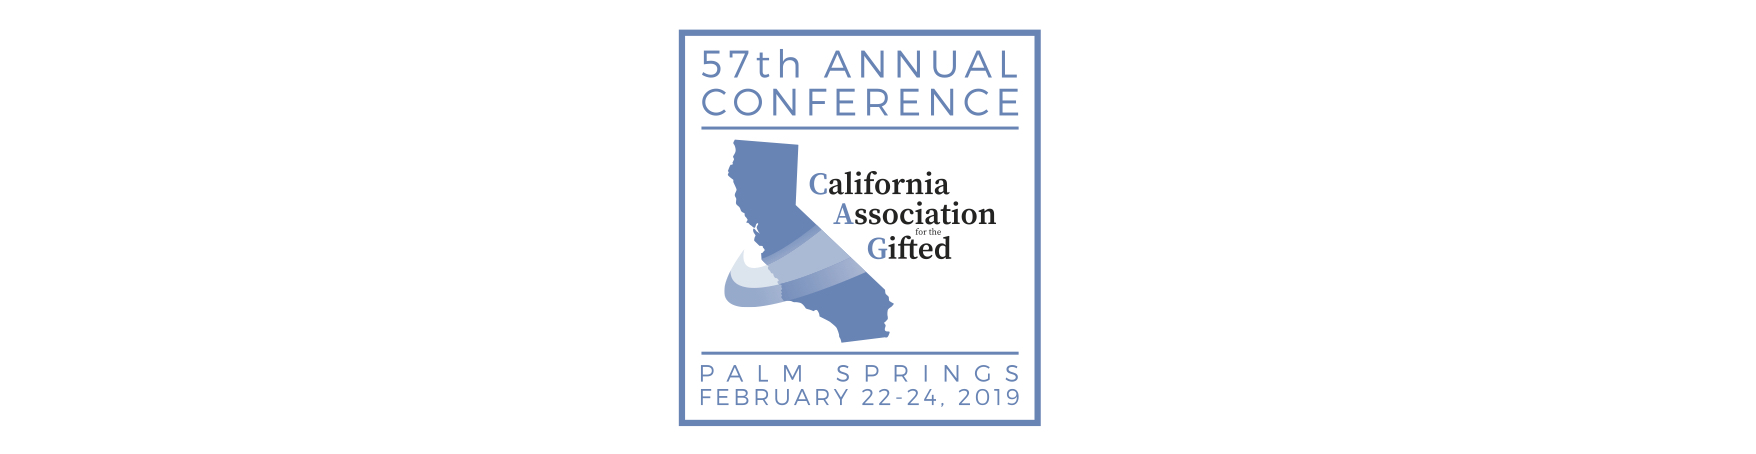 57th Annual California Association for the Gifted  Conference